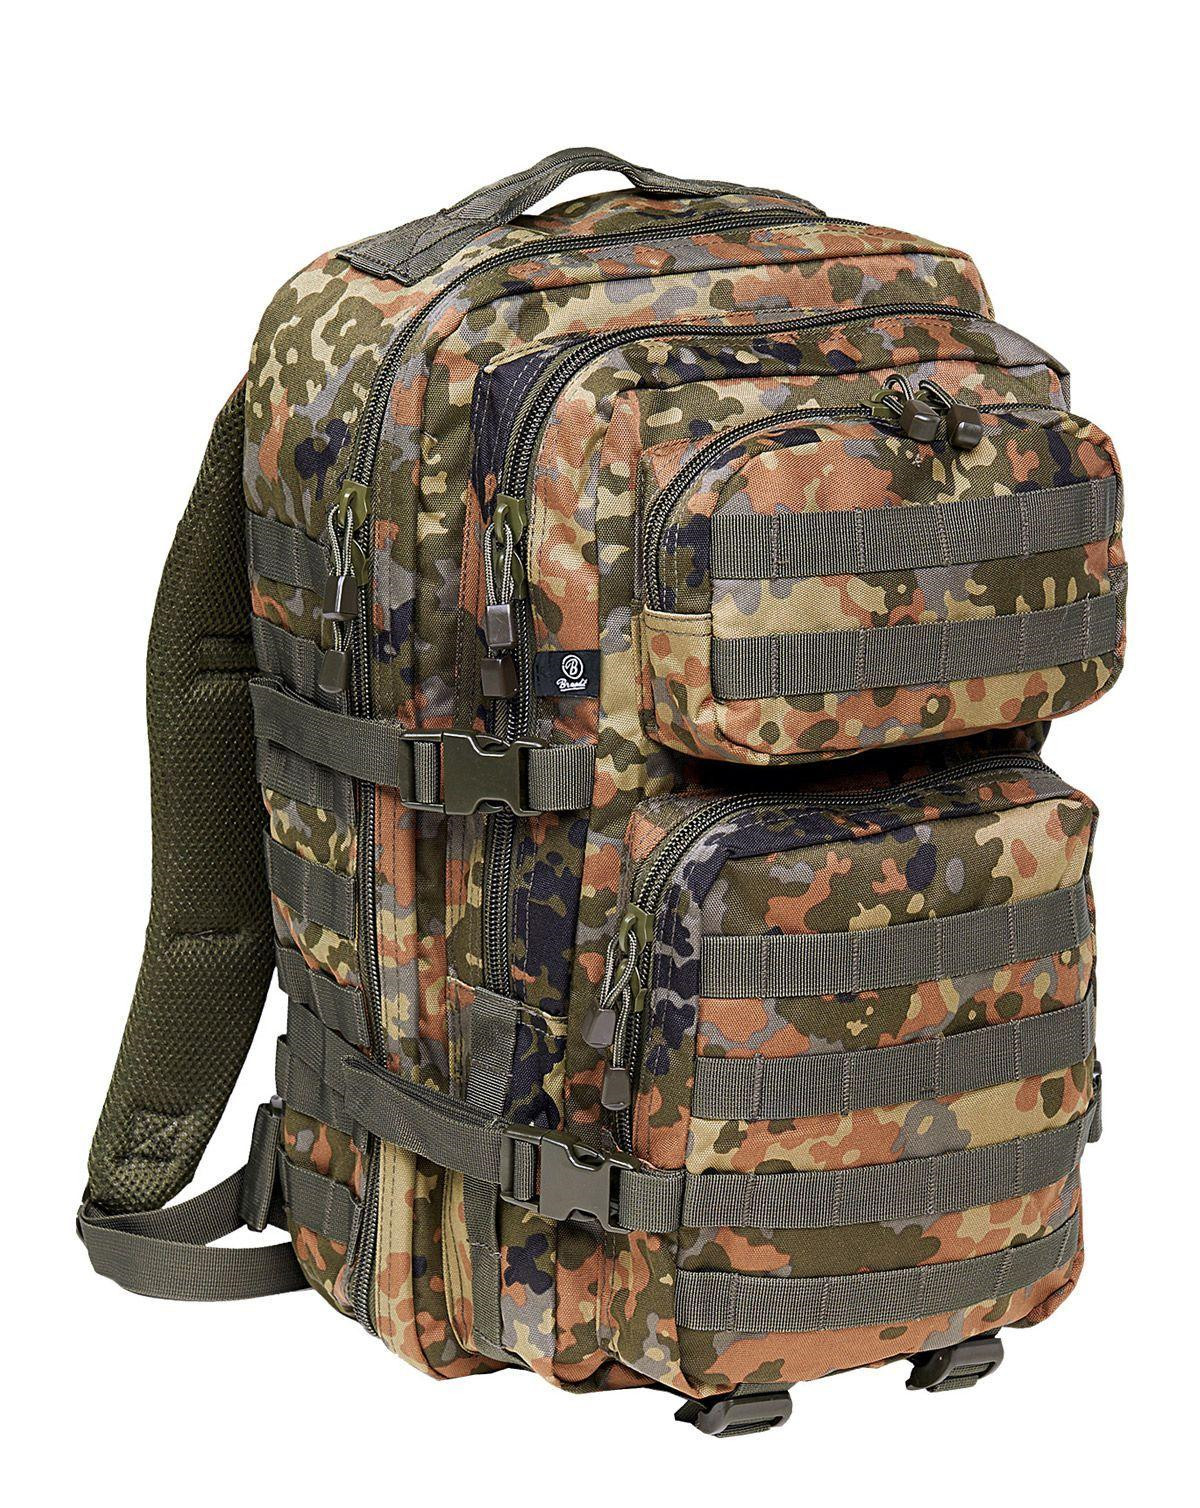 Brandit U.S. Assault Pack, Large (BW Flecktarn, One Size)